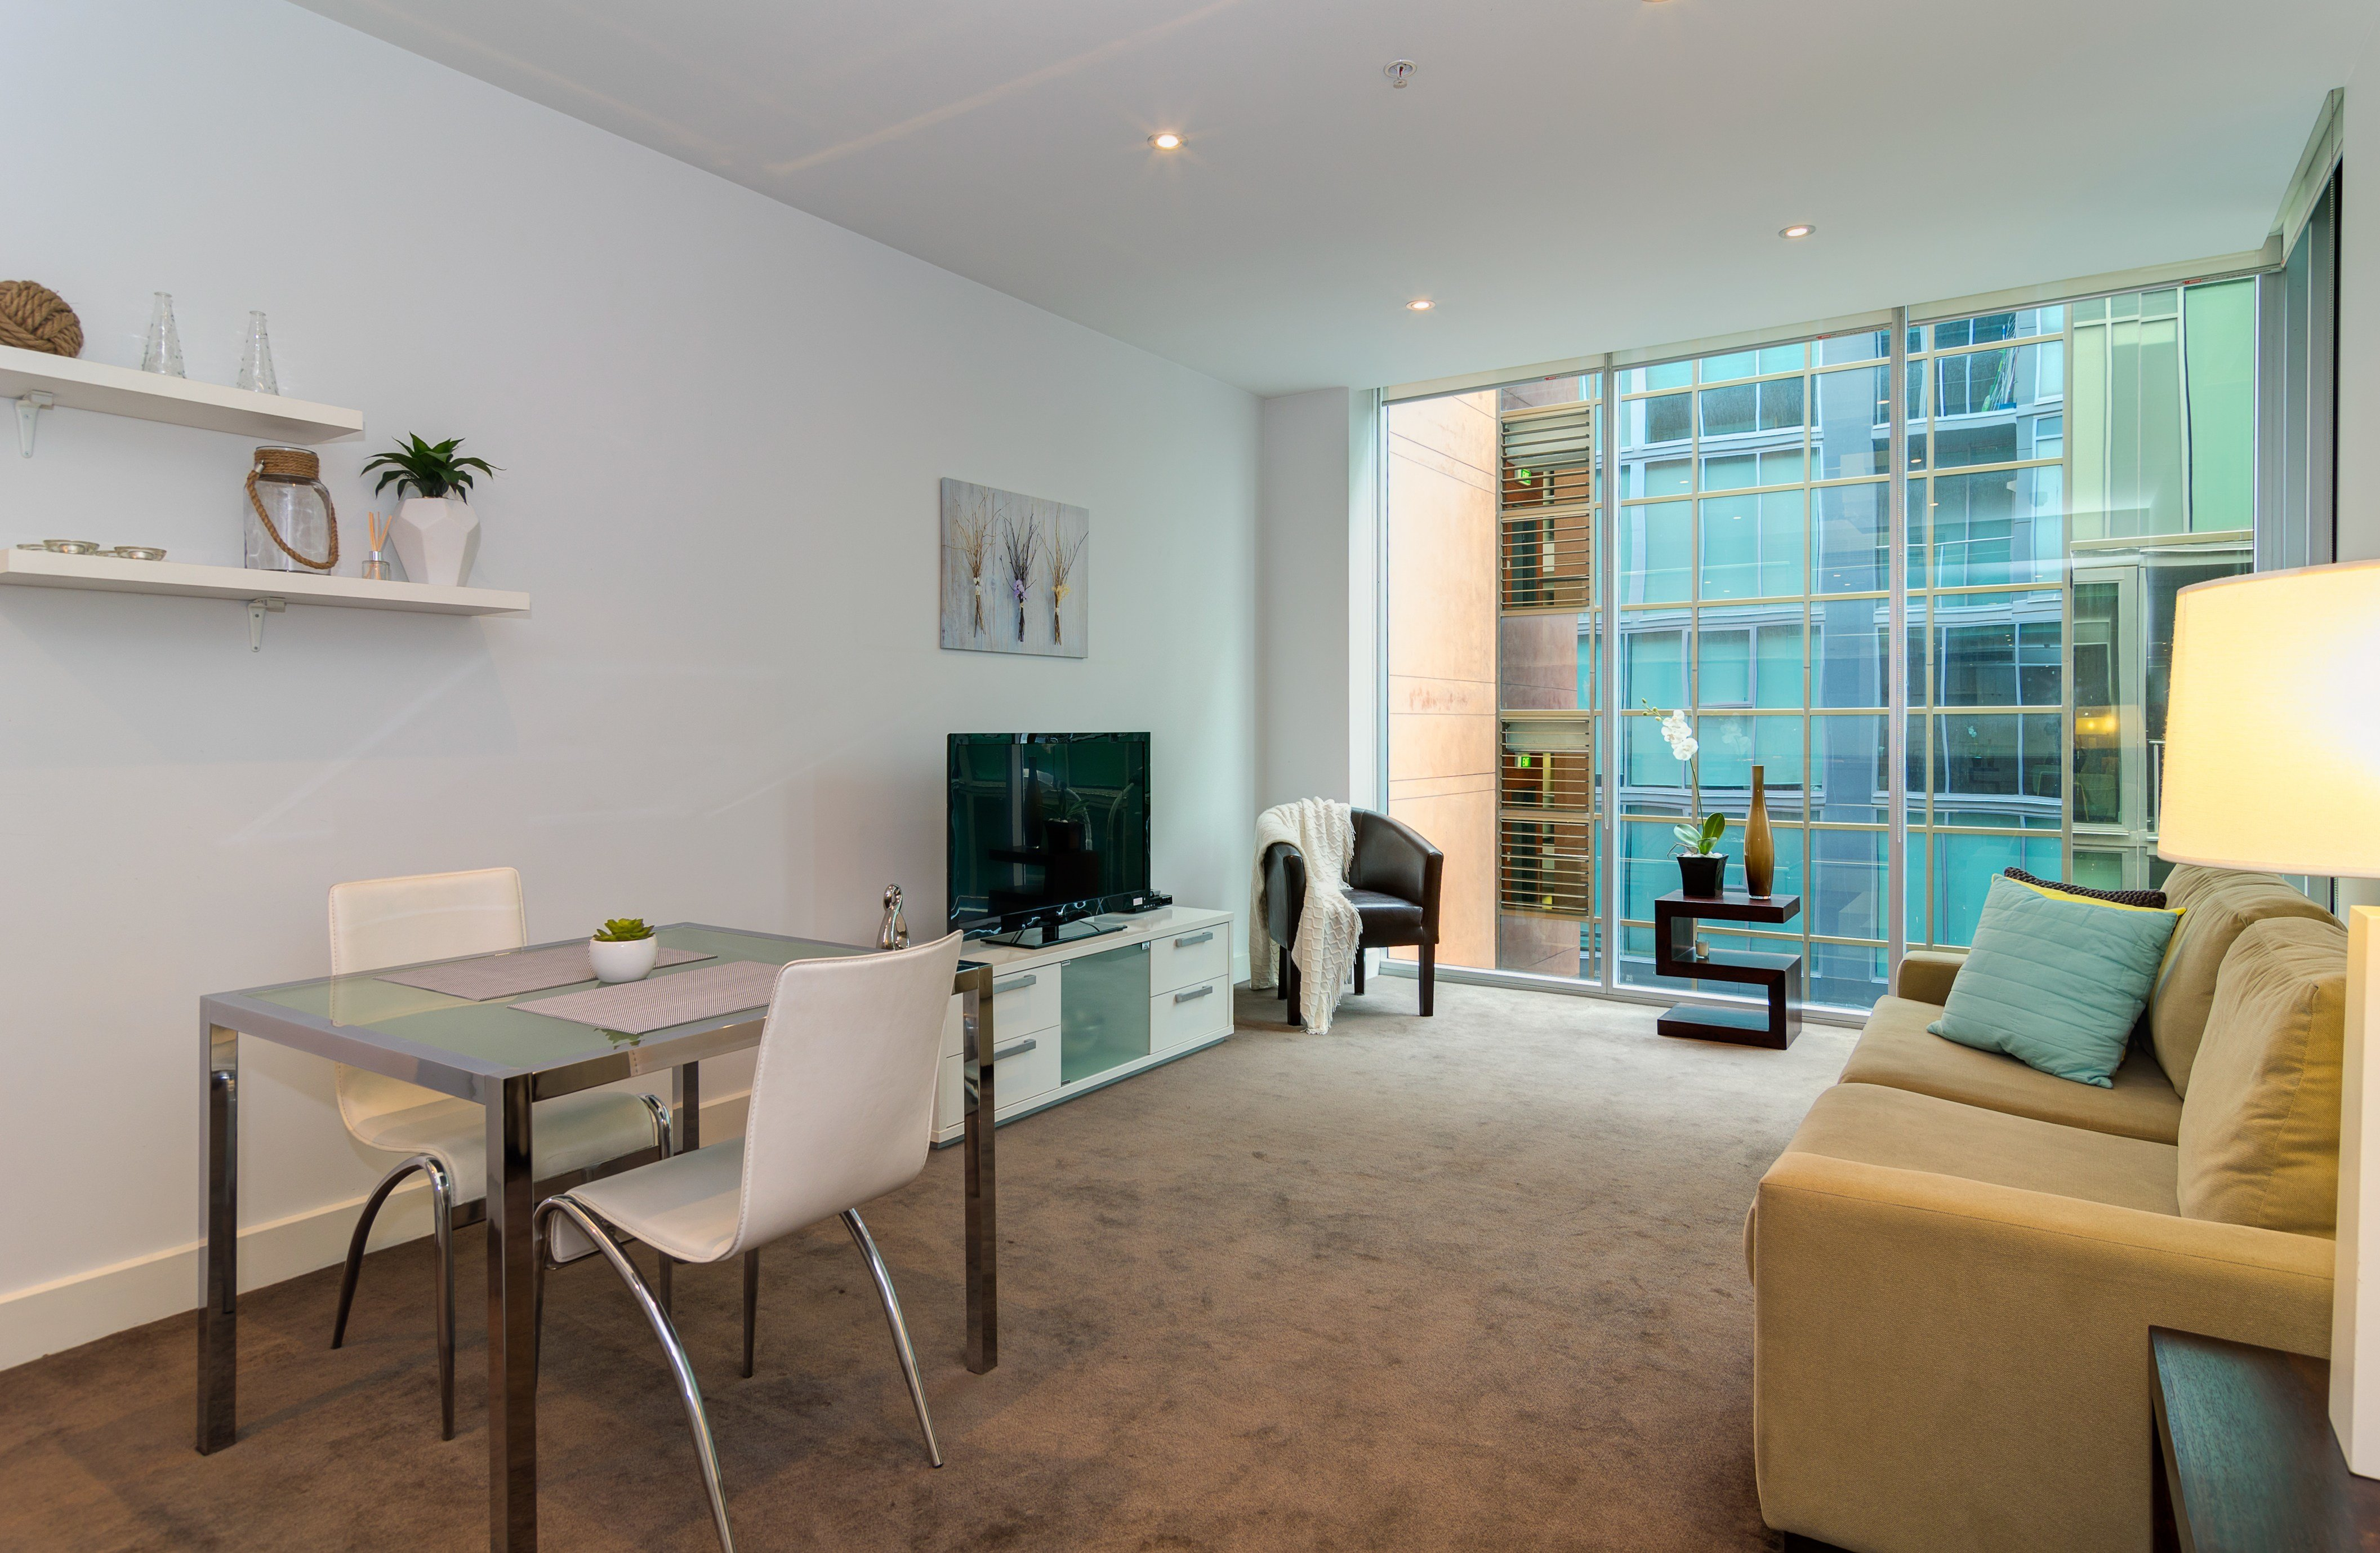 Best Corporate 1 Bedroom Apartment In Adelaide Convido With Pictures Original 1024 x 768